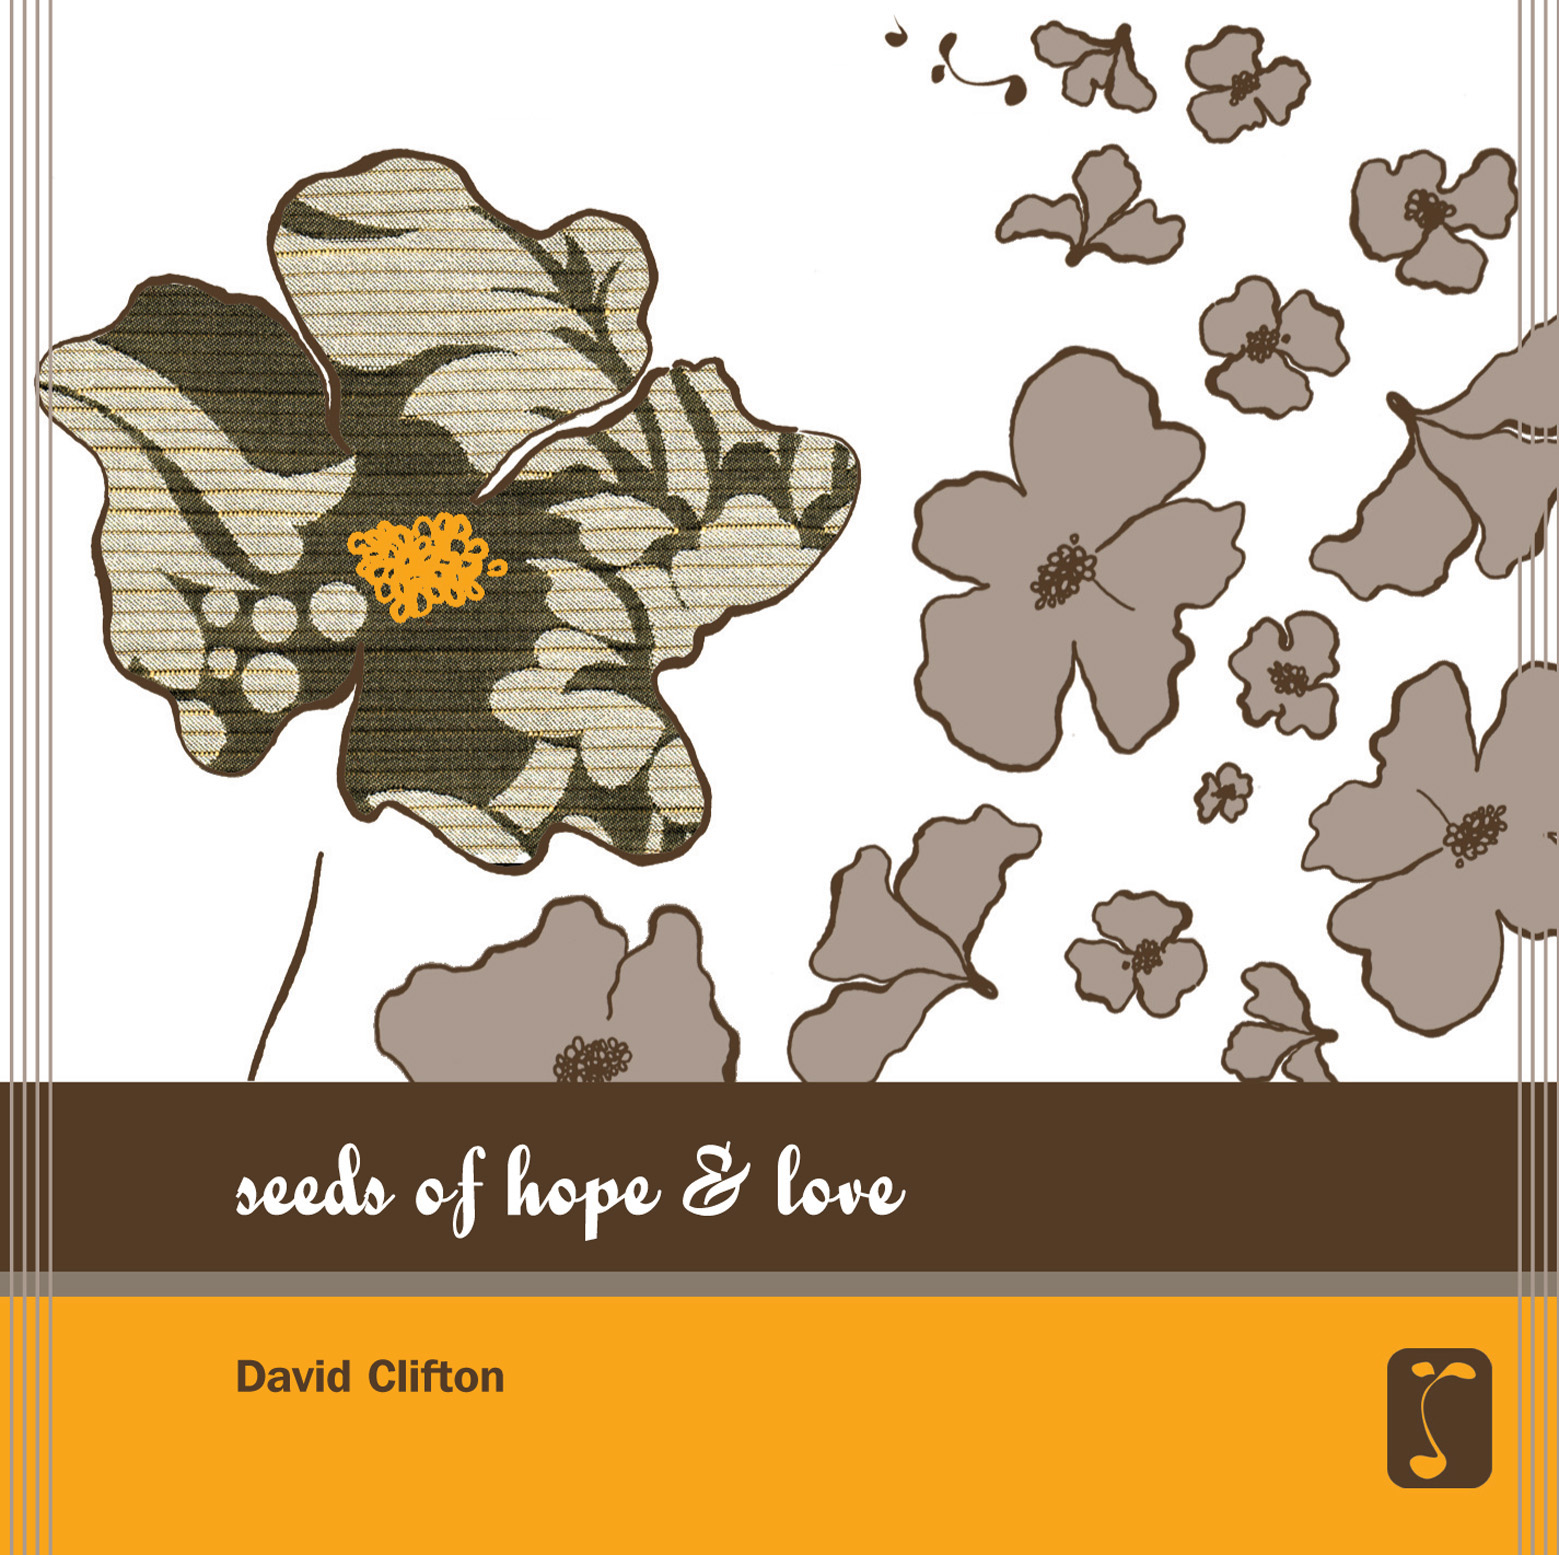 clifton_seedsofhopeandlove